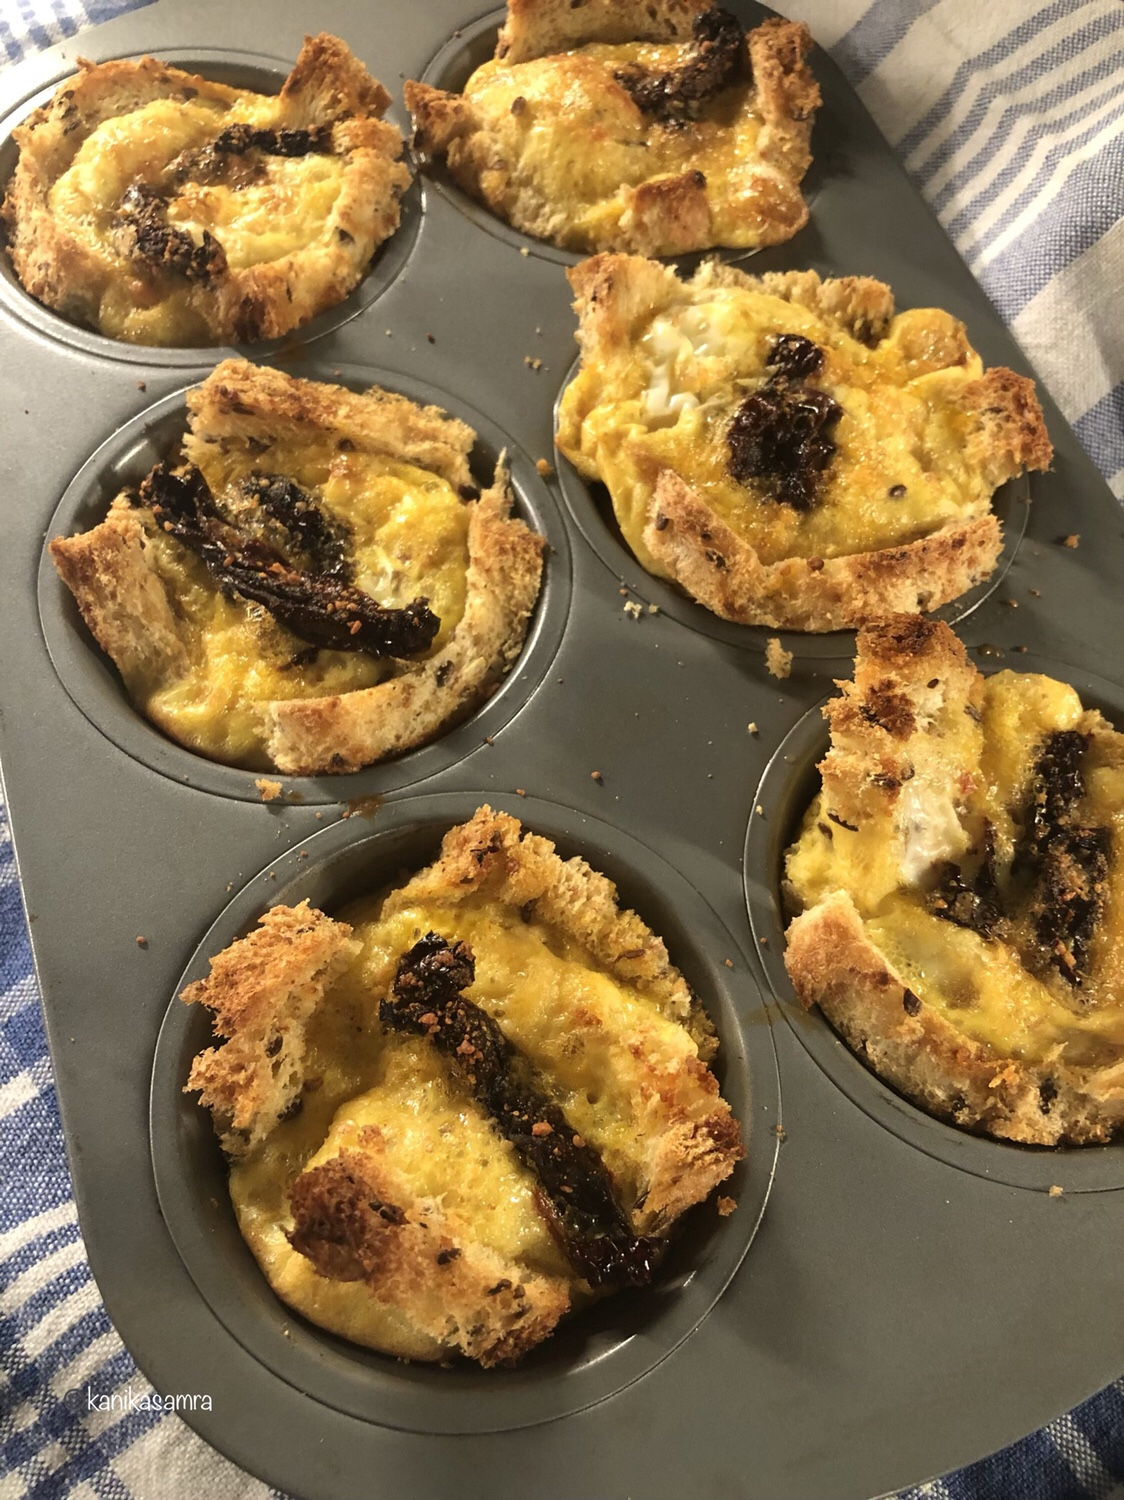 Breakfast Muffins with Bread, Eggs and Sundried Tomatoes